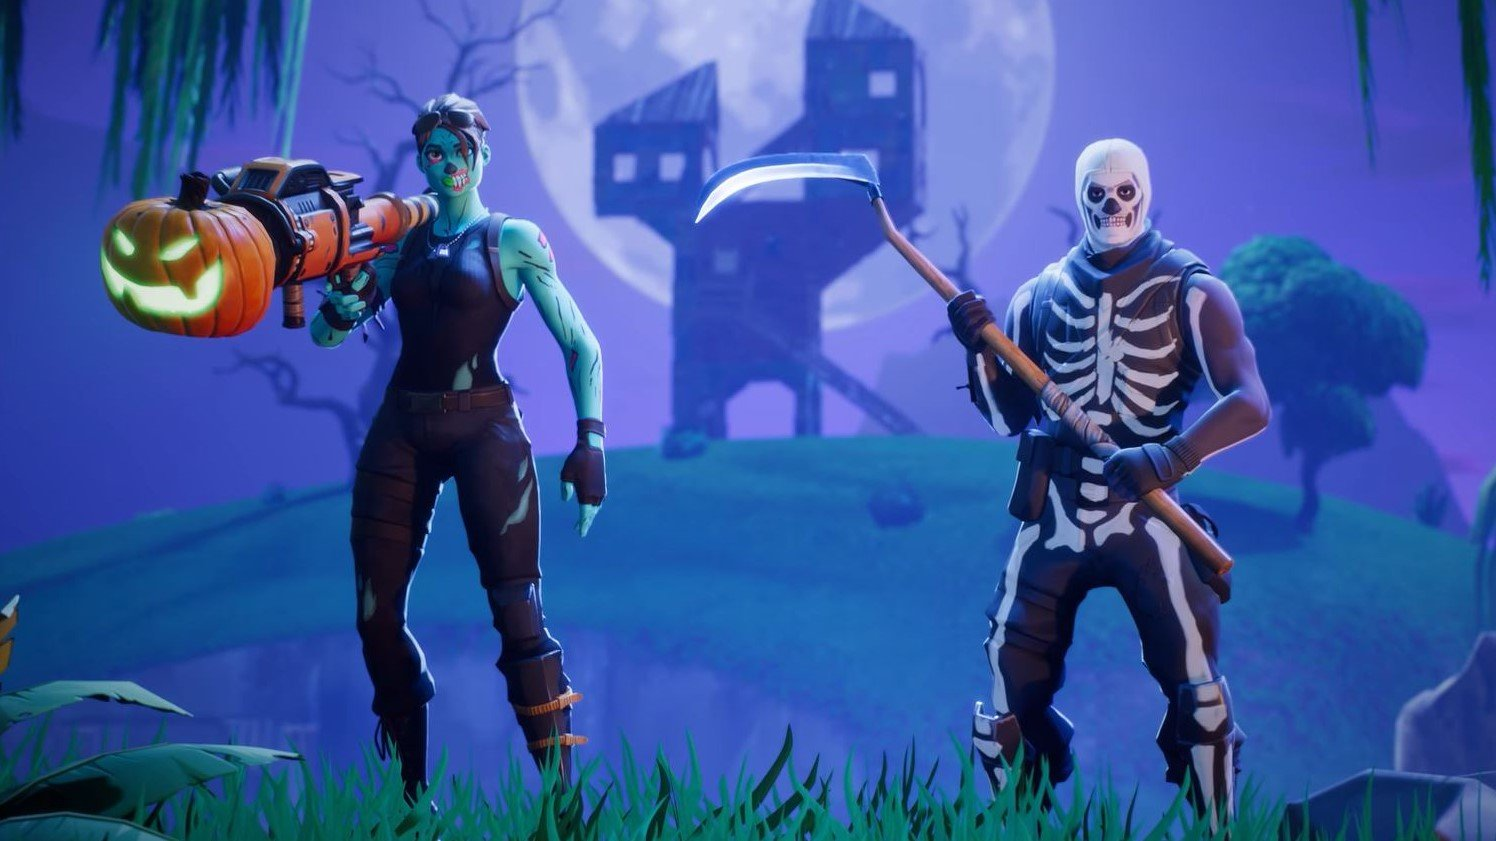 19 Ghoul Trooper Fortnite Wallpapers On Wallpapersafari